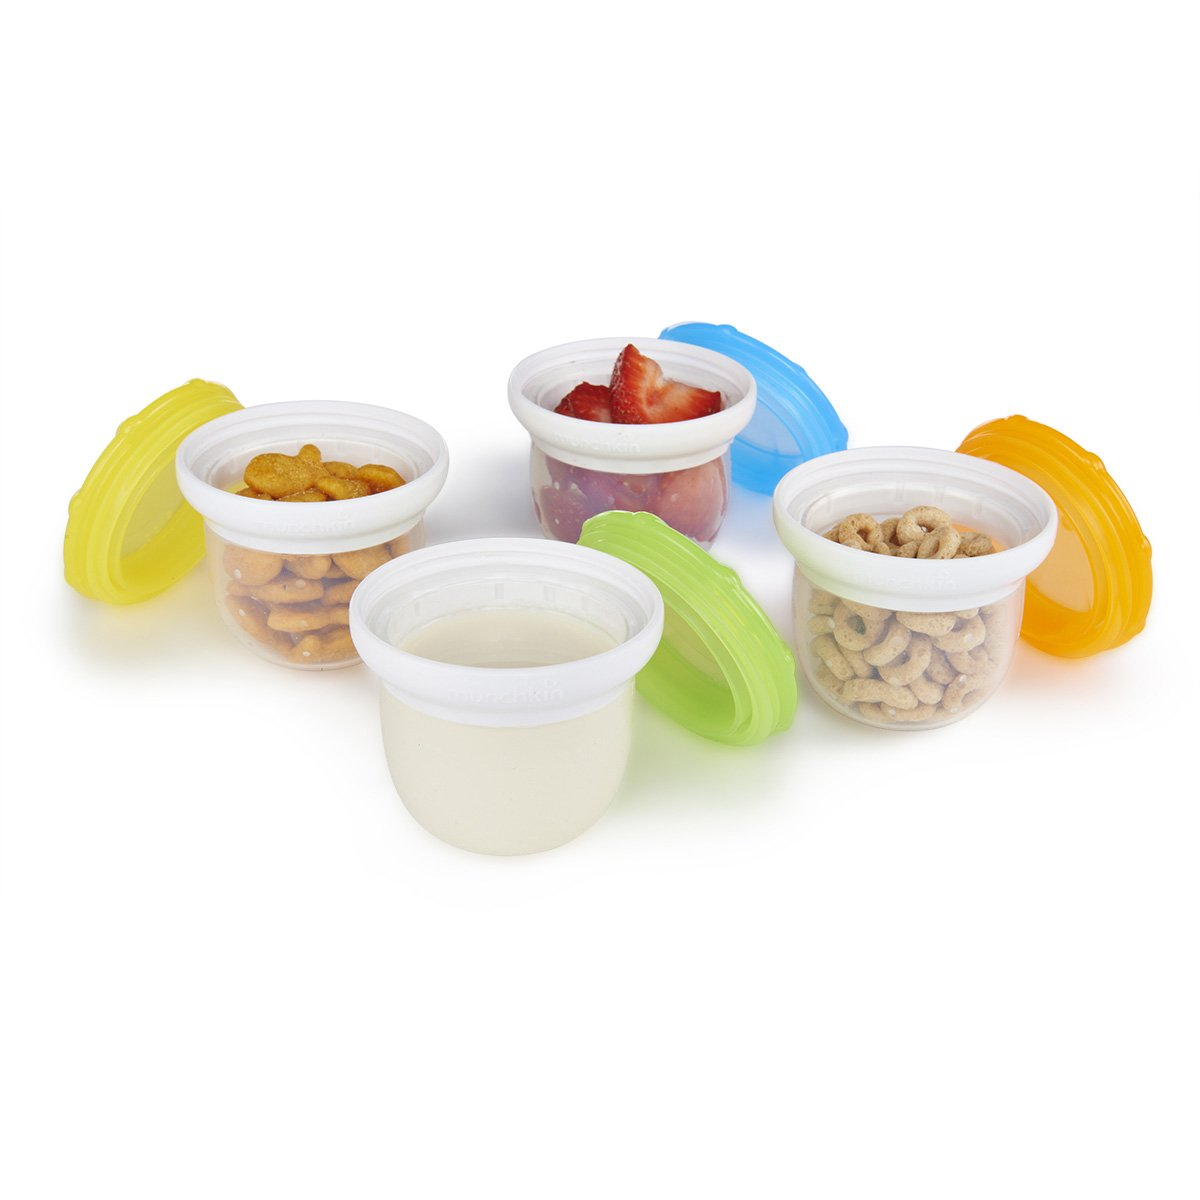 Munchkin 4 Piece Silicone Freezer and Storage Cups by Munchkin (Image #2)